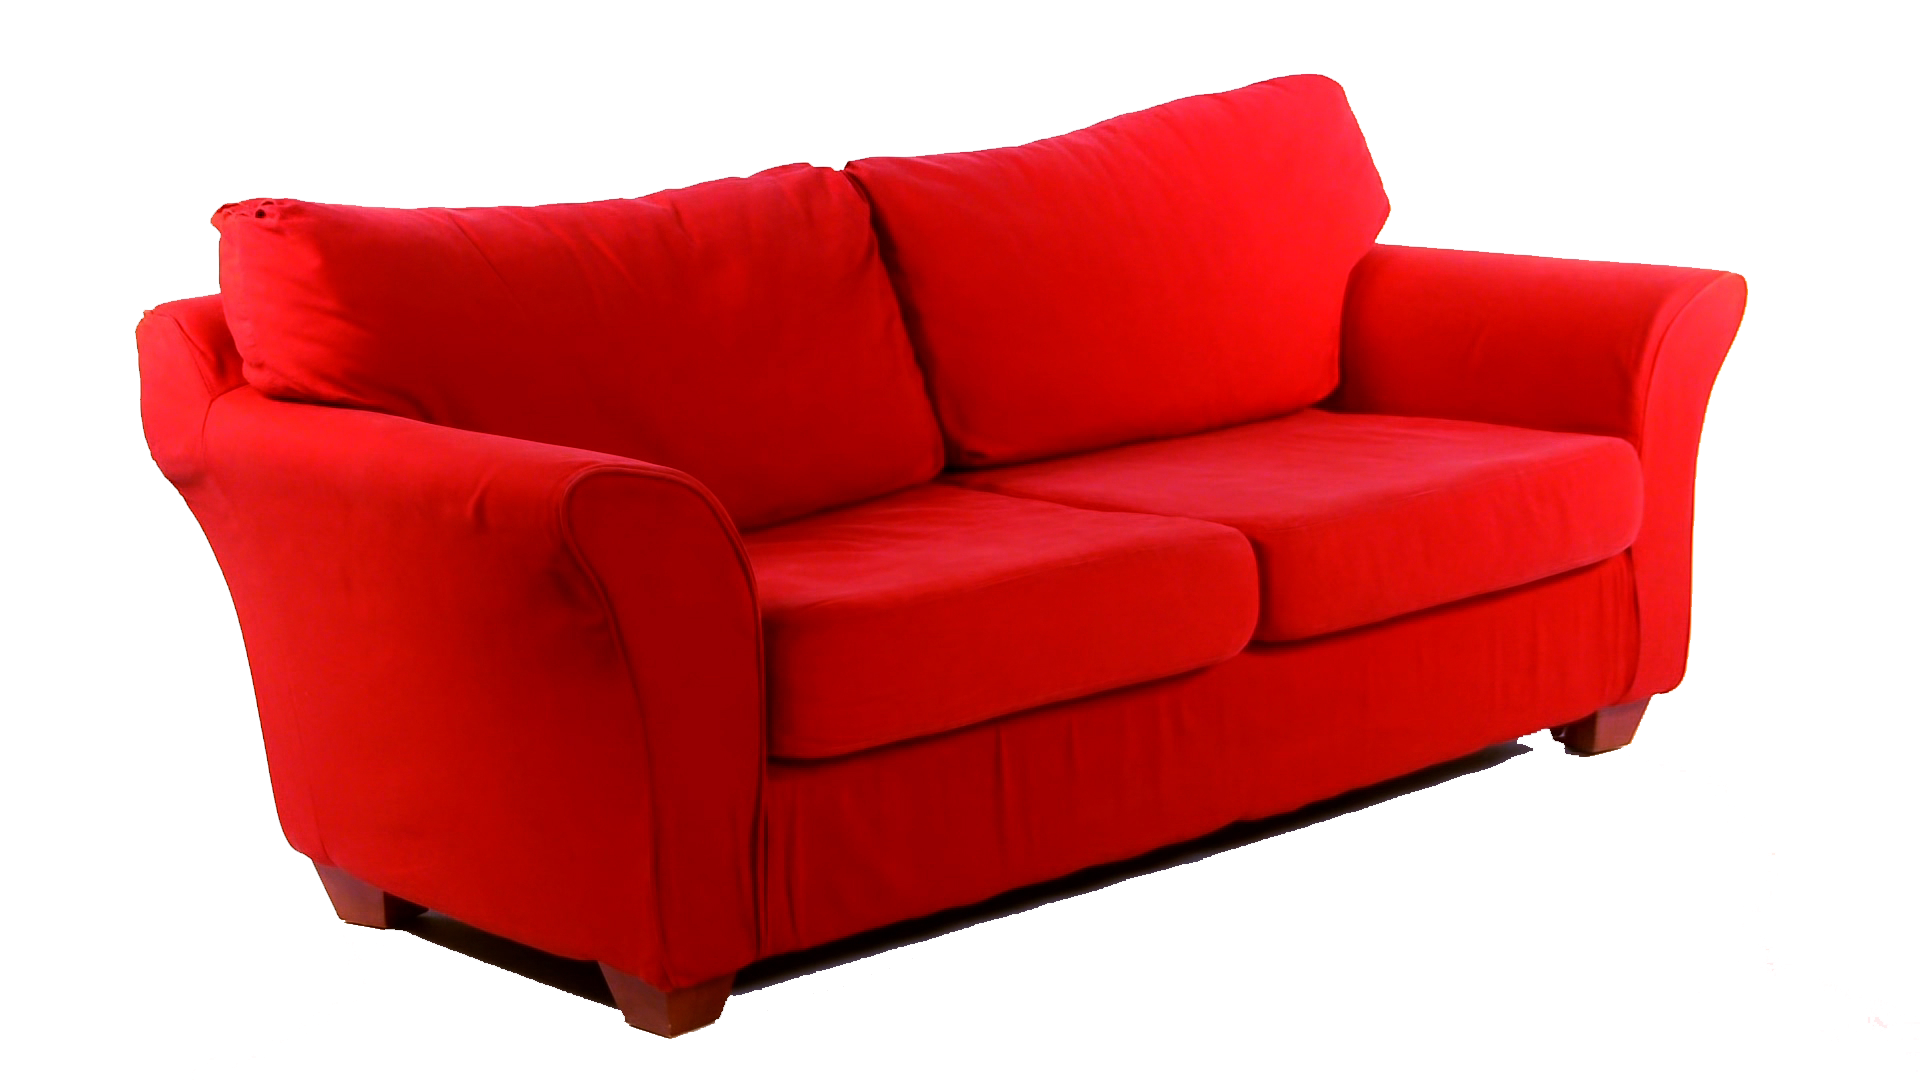 red couch campaign kicking off in birmingham followthatcouch. Black Bedroom Furniture Sets. Home Design Ideas